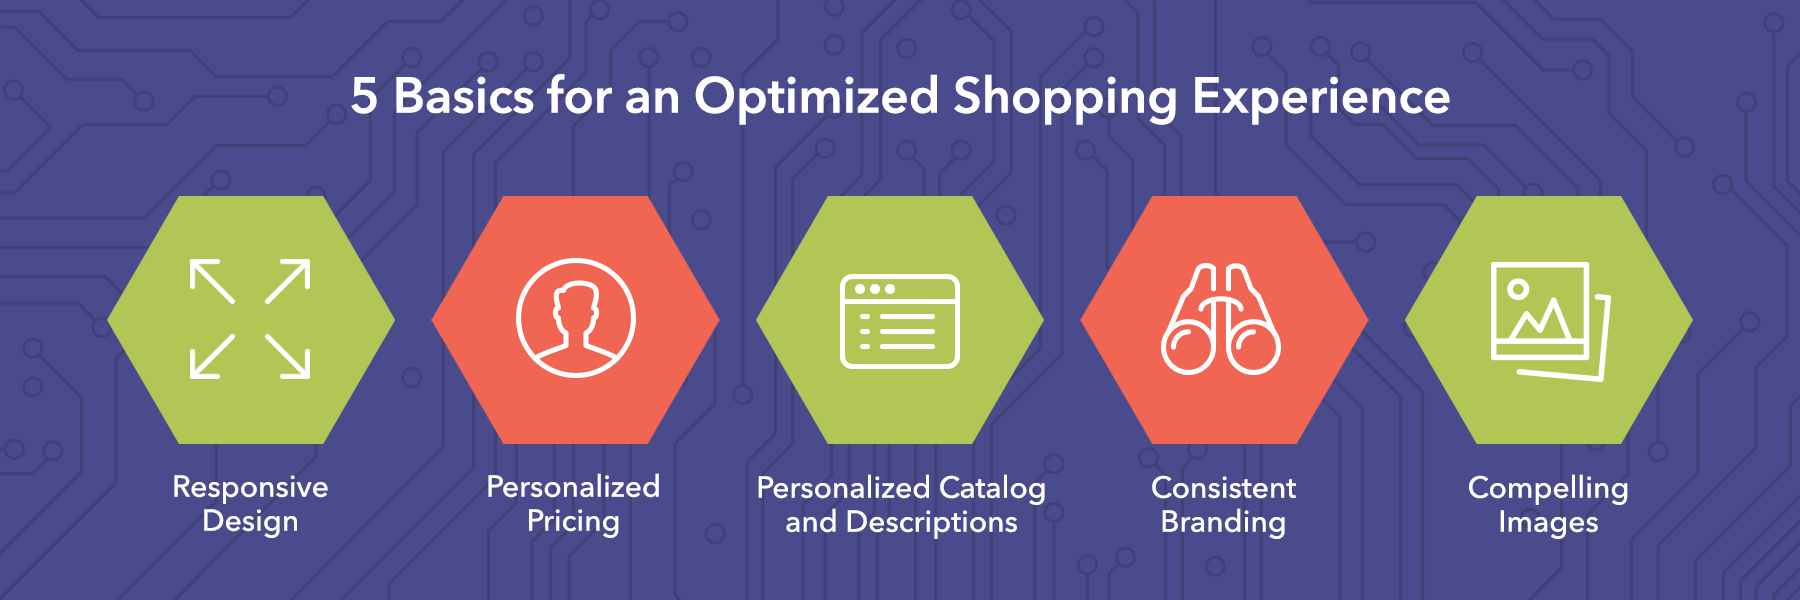 Basics of an Optimized Online Shopping Experience